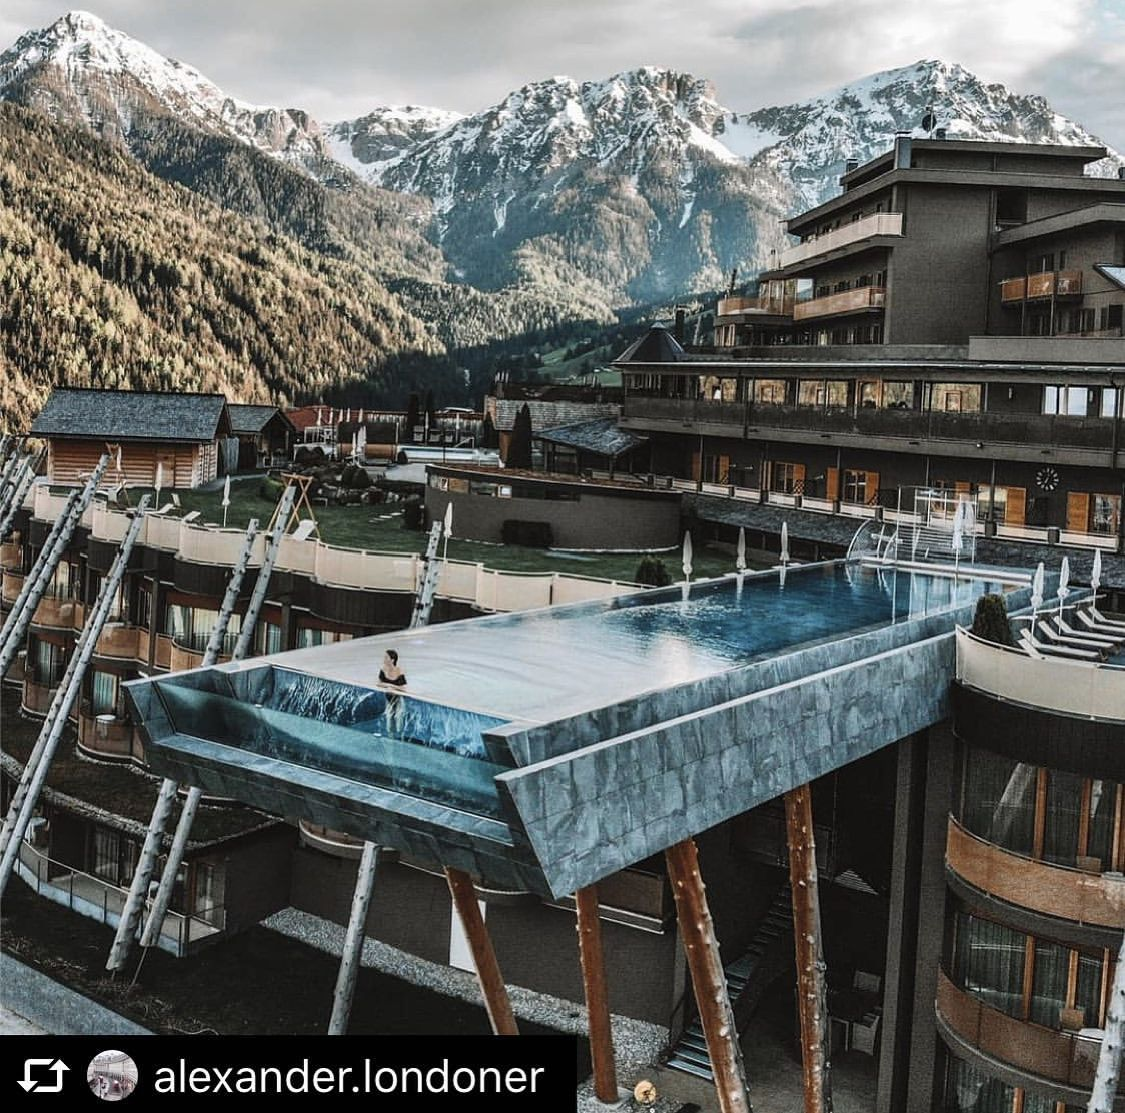 Best Hotel In Switzerland With Infinity Pool The Best Thermal Spa In Switzerland Italy And Austria Alps Behind My Scene Italy Hotels Beautiful Hotels Hotel Pool